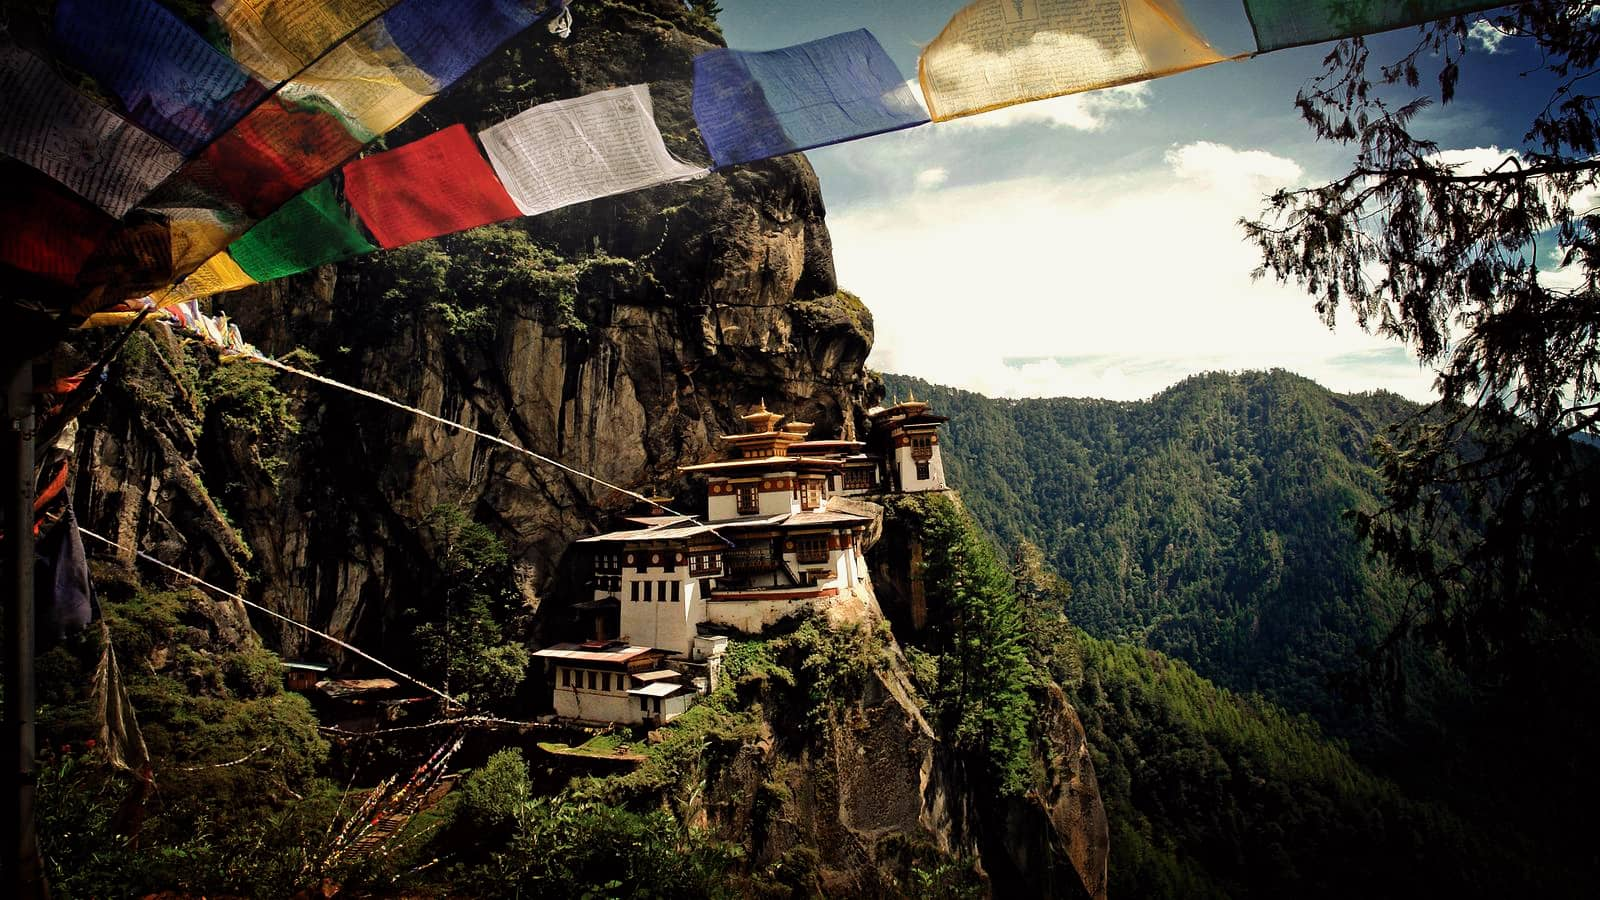 Himalayan kingdom with mystery and magic